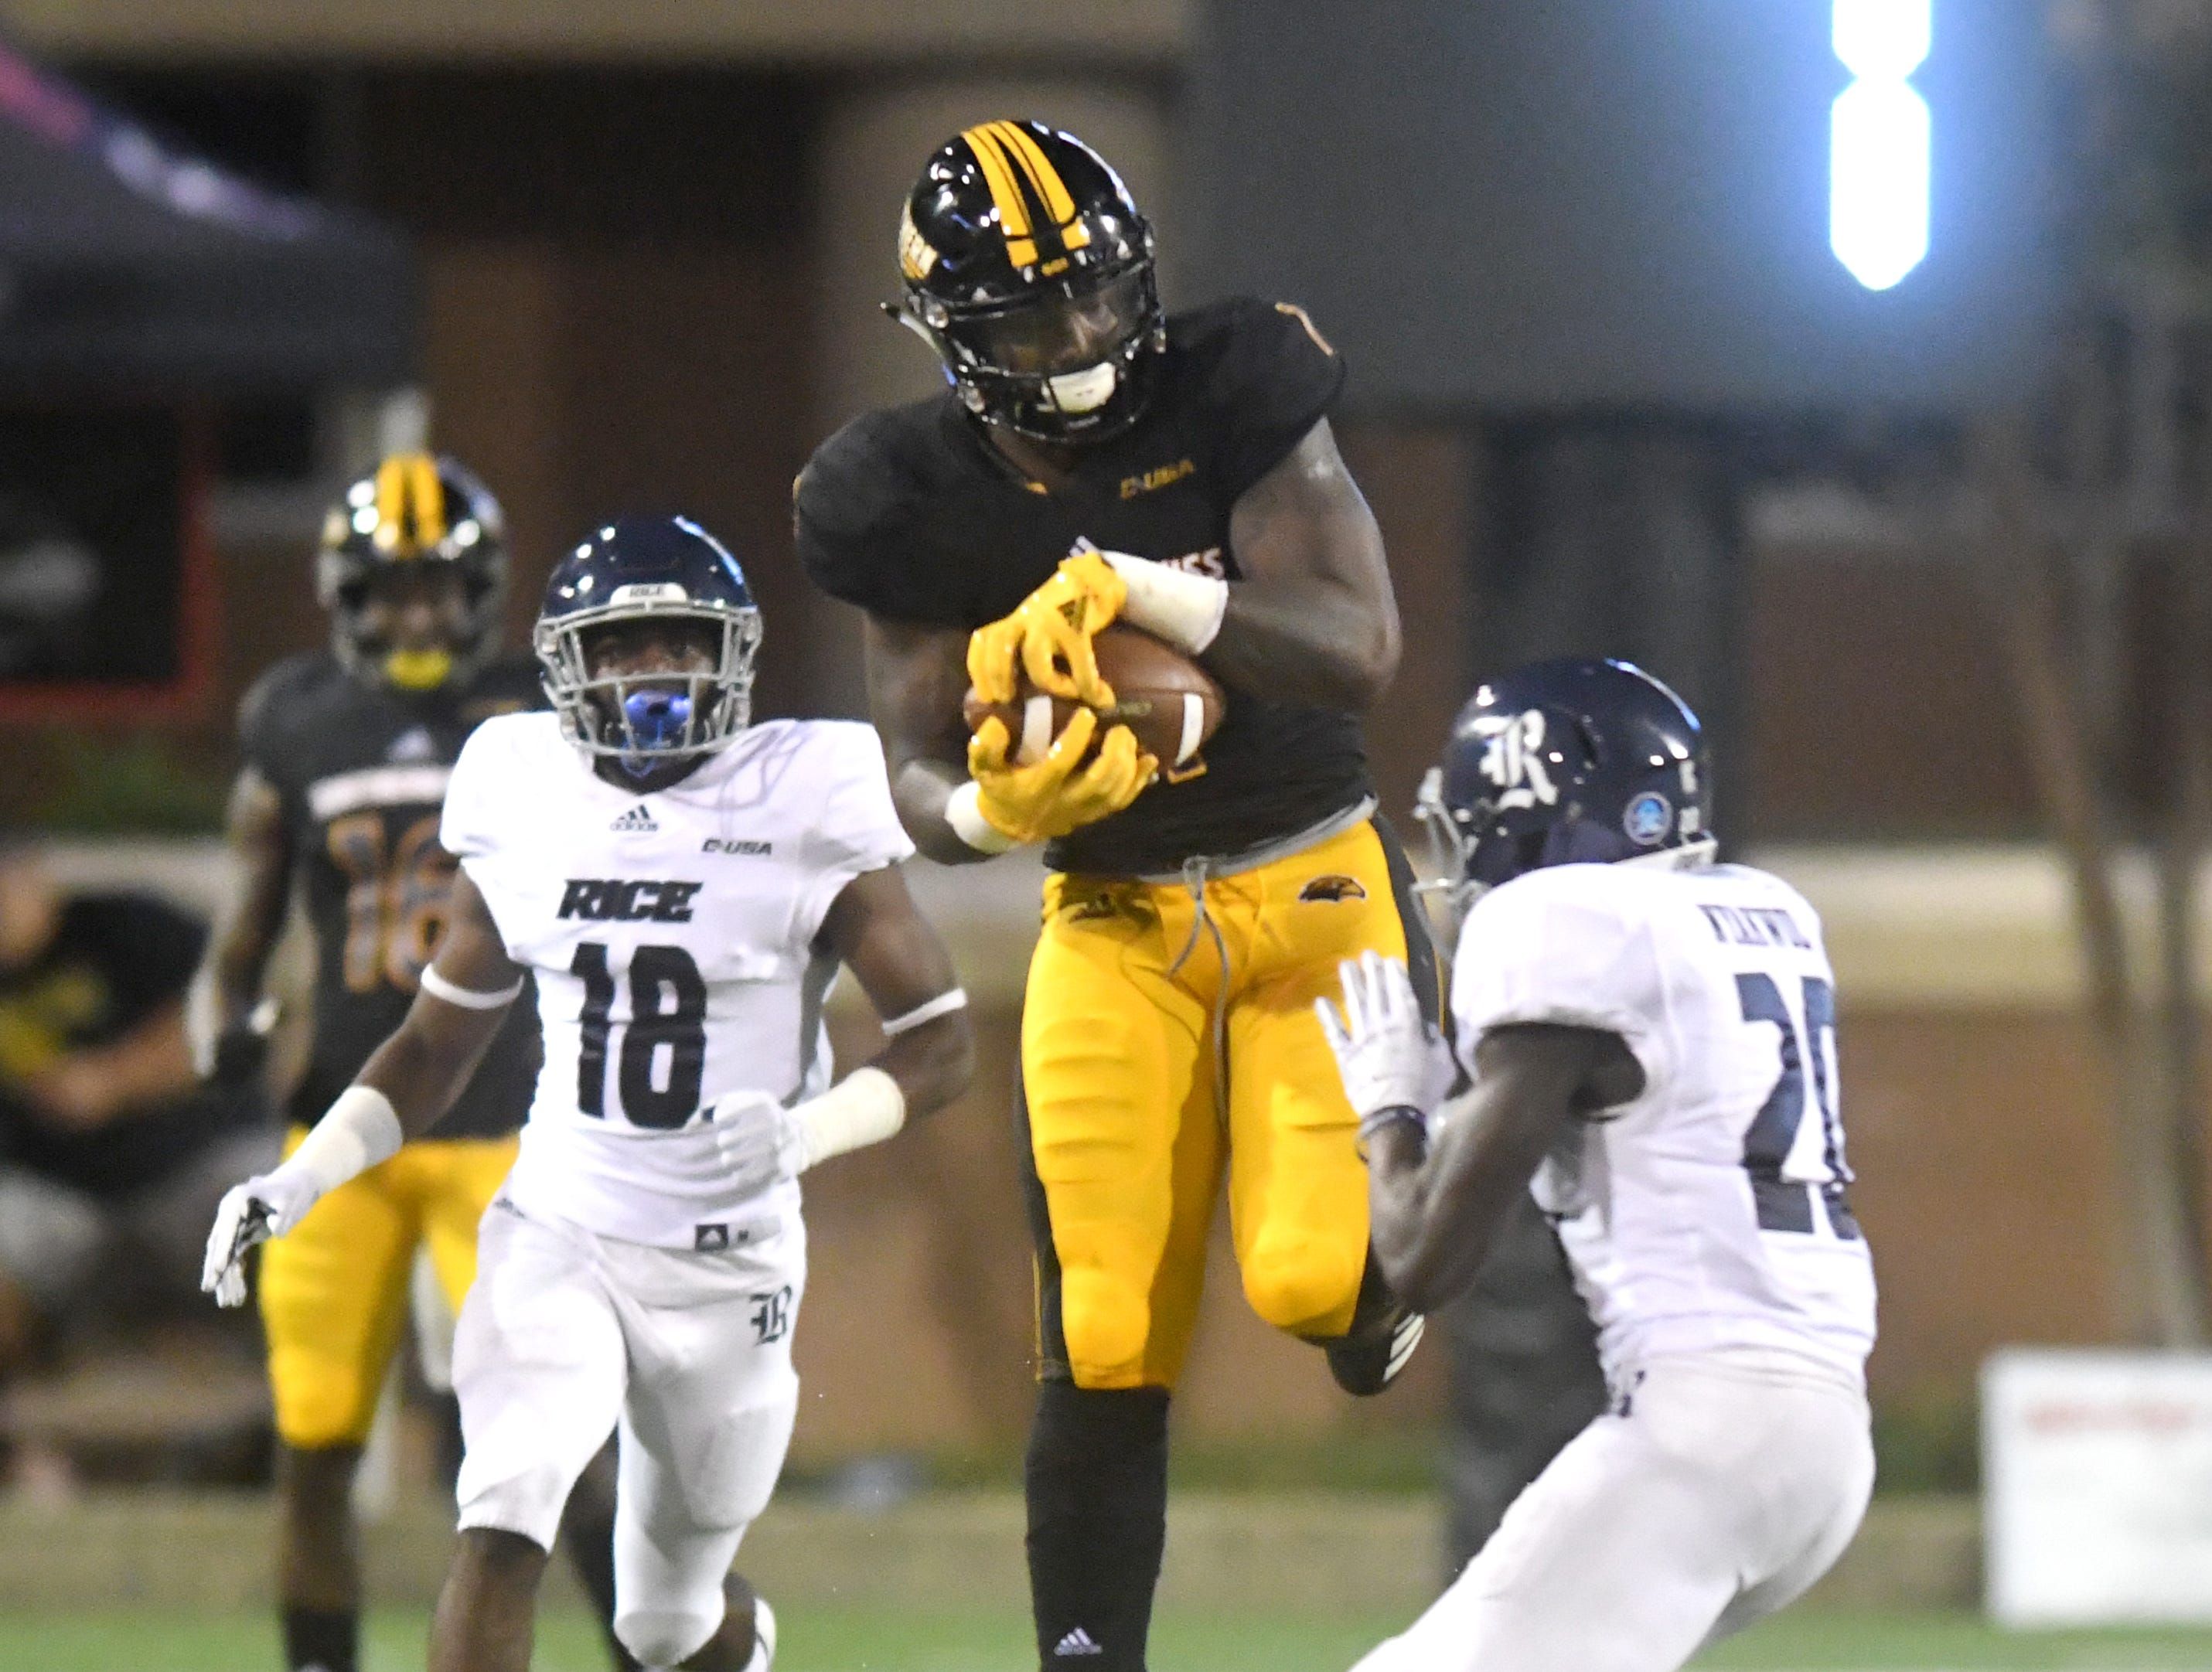 Southern Miss tight end Jay'Shawn Washington catches the ball for a first down in a game against Rice at M.M. Roberts Stadium on Saturday, September 22, 2018.